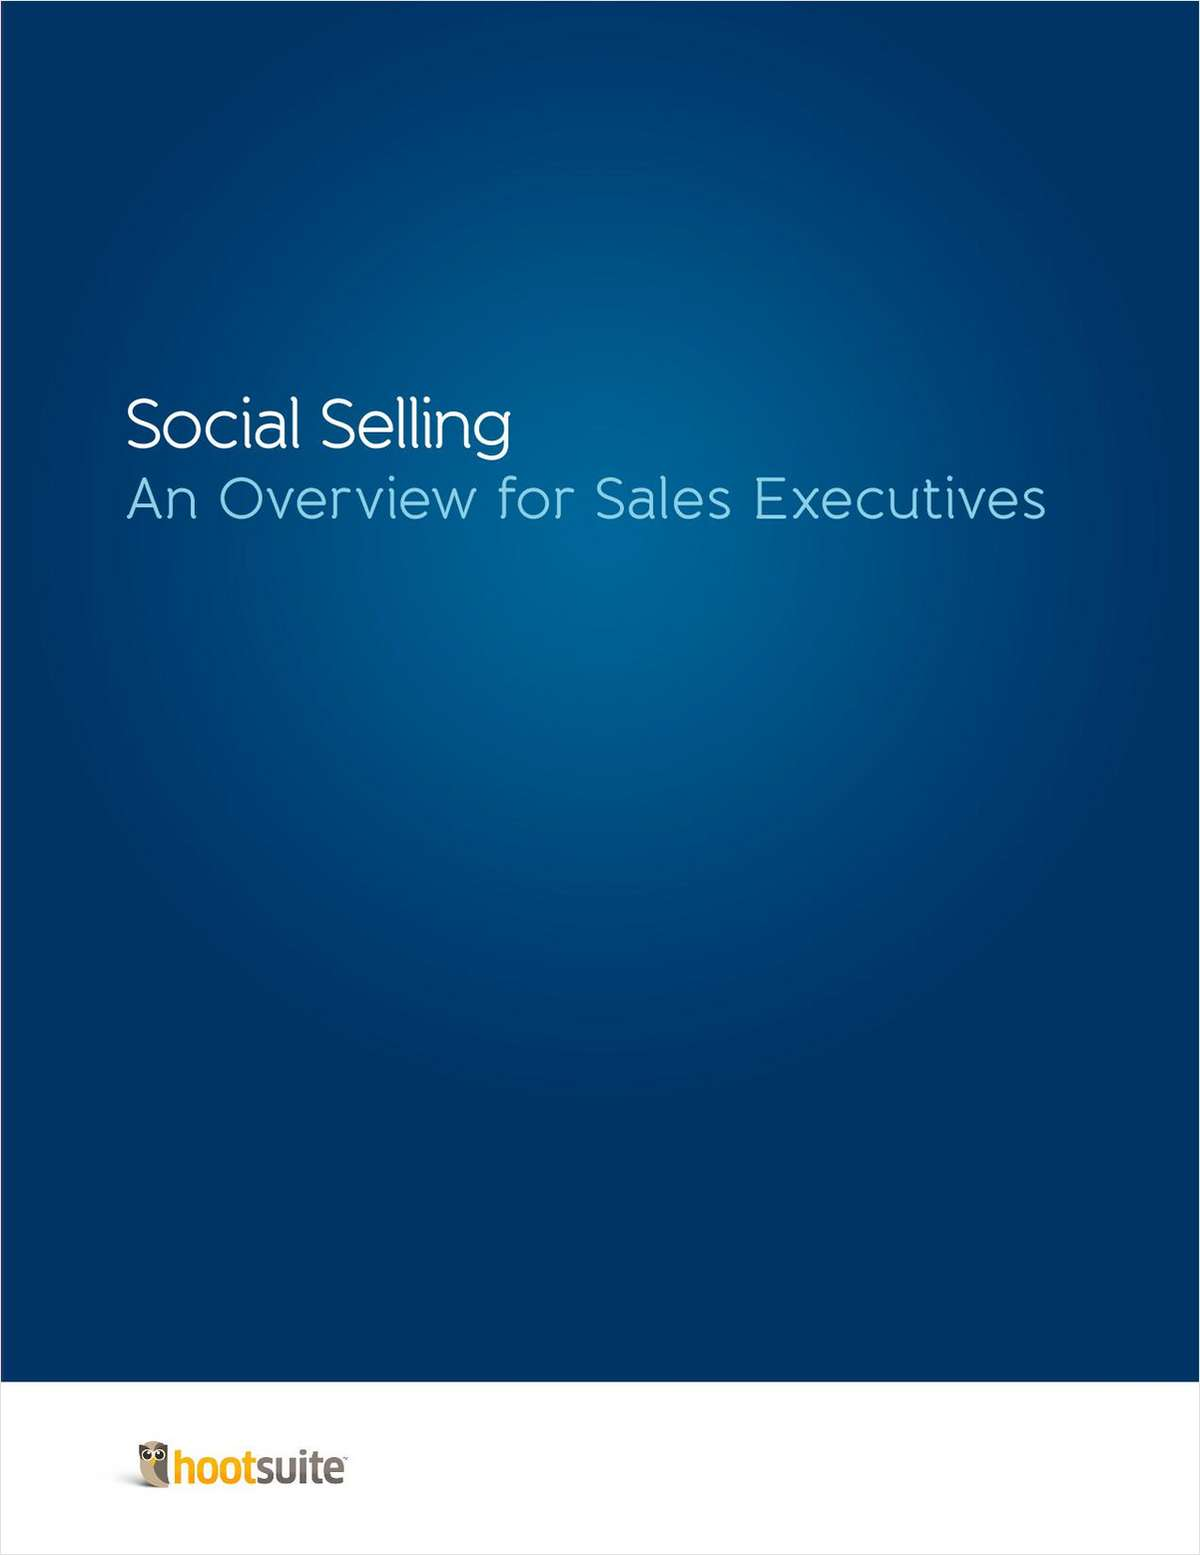 Social Selling: An Overview for Sales Executives